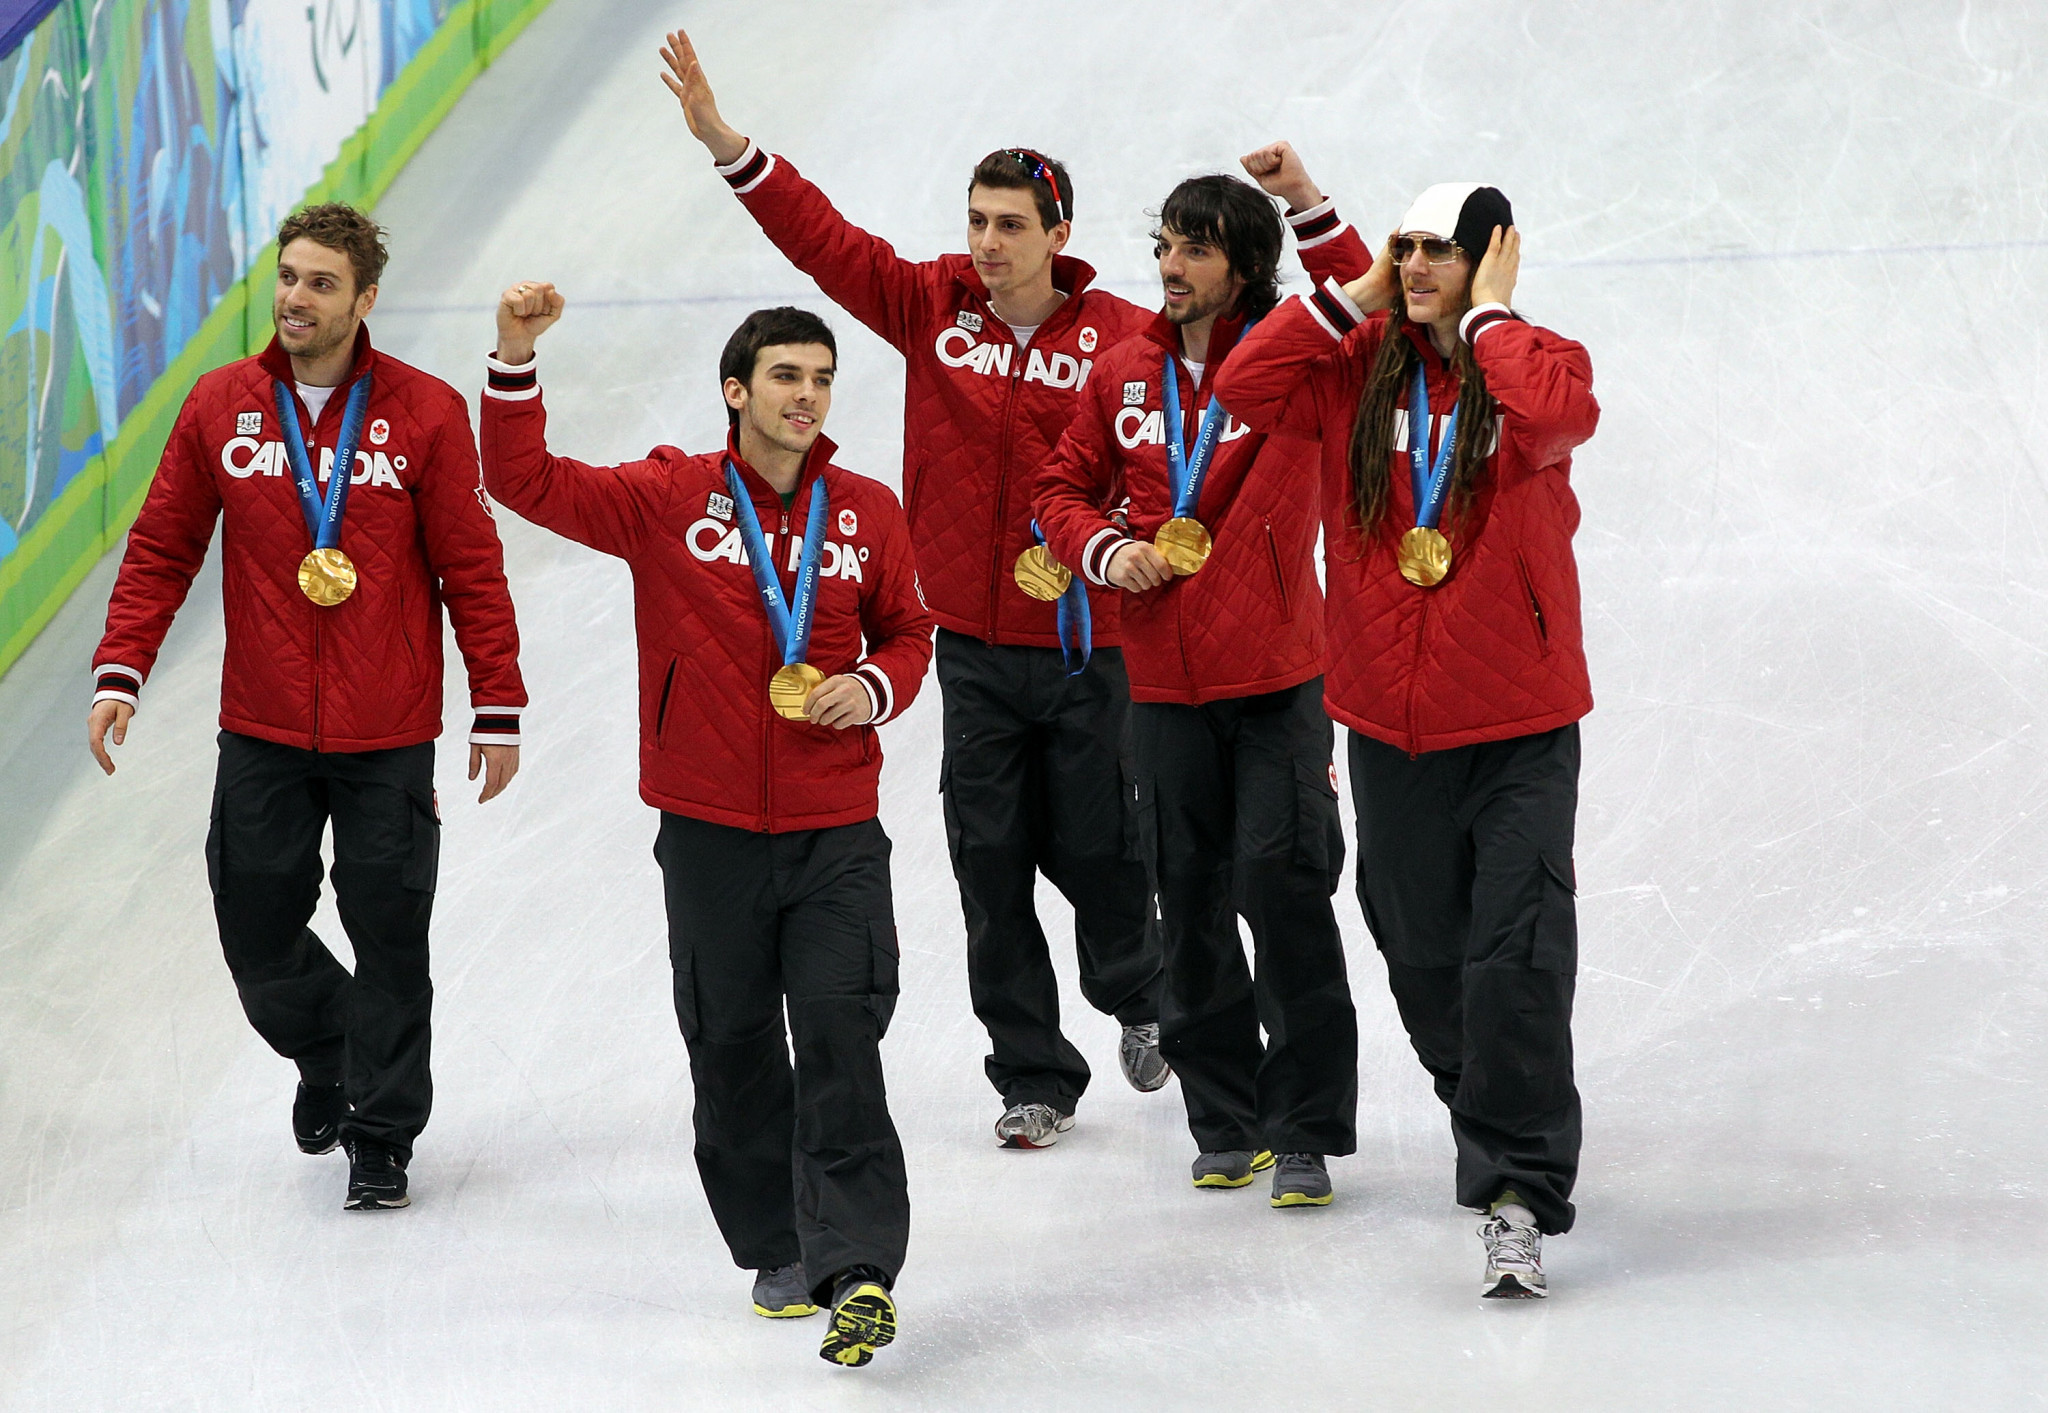 Guillaume Bastille was a member of Canada's 5,000m relay gold medal winning team at Vancouver 2010 ©Getty Images